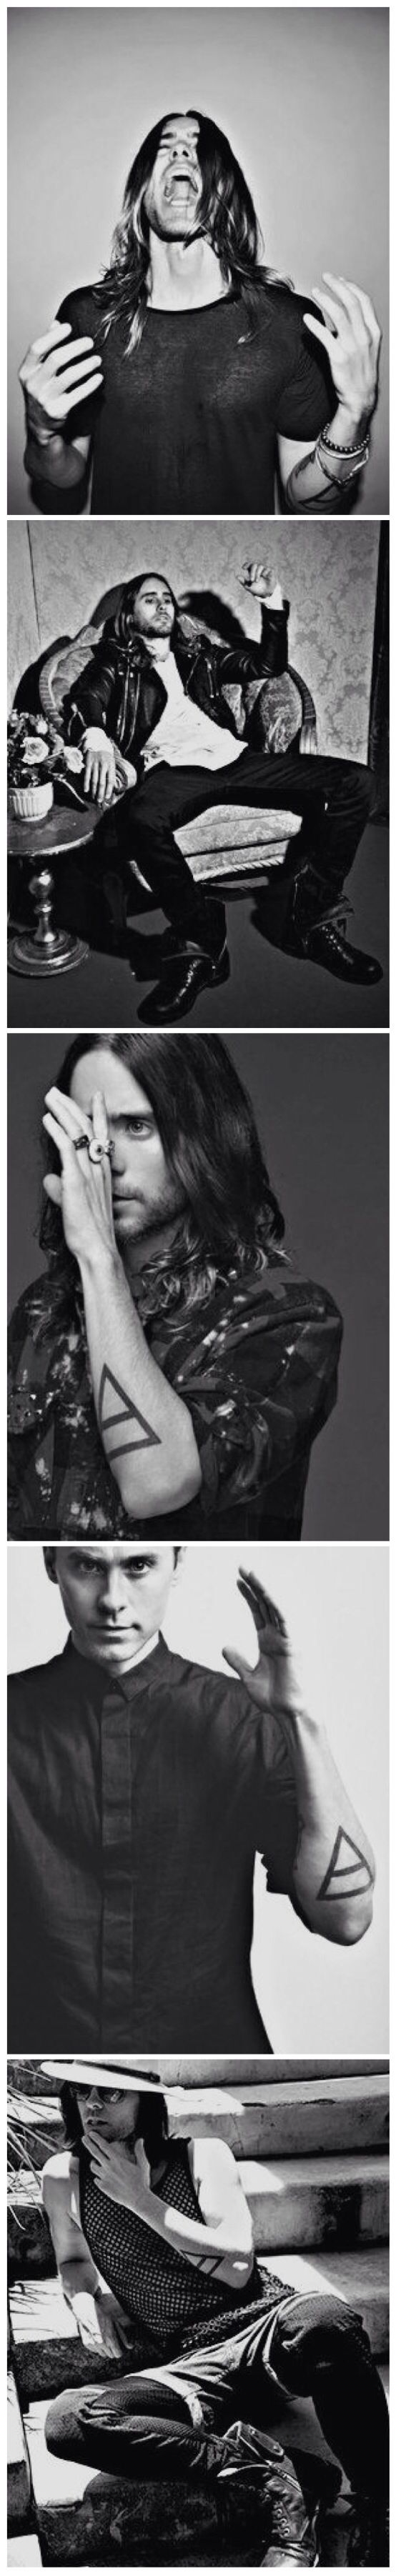 "Jared Leto  ""I'm not saying I'm sorry / One day, maybe We'll meet again ..."""